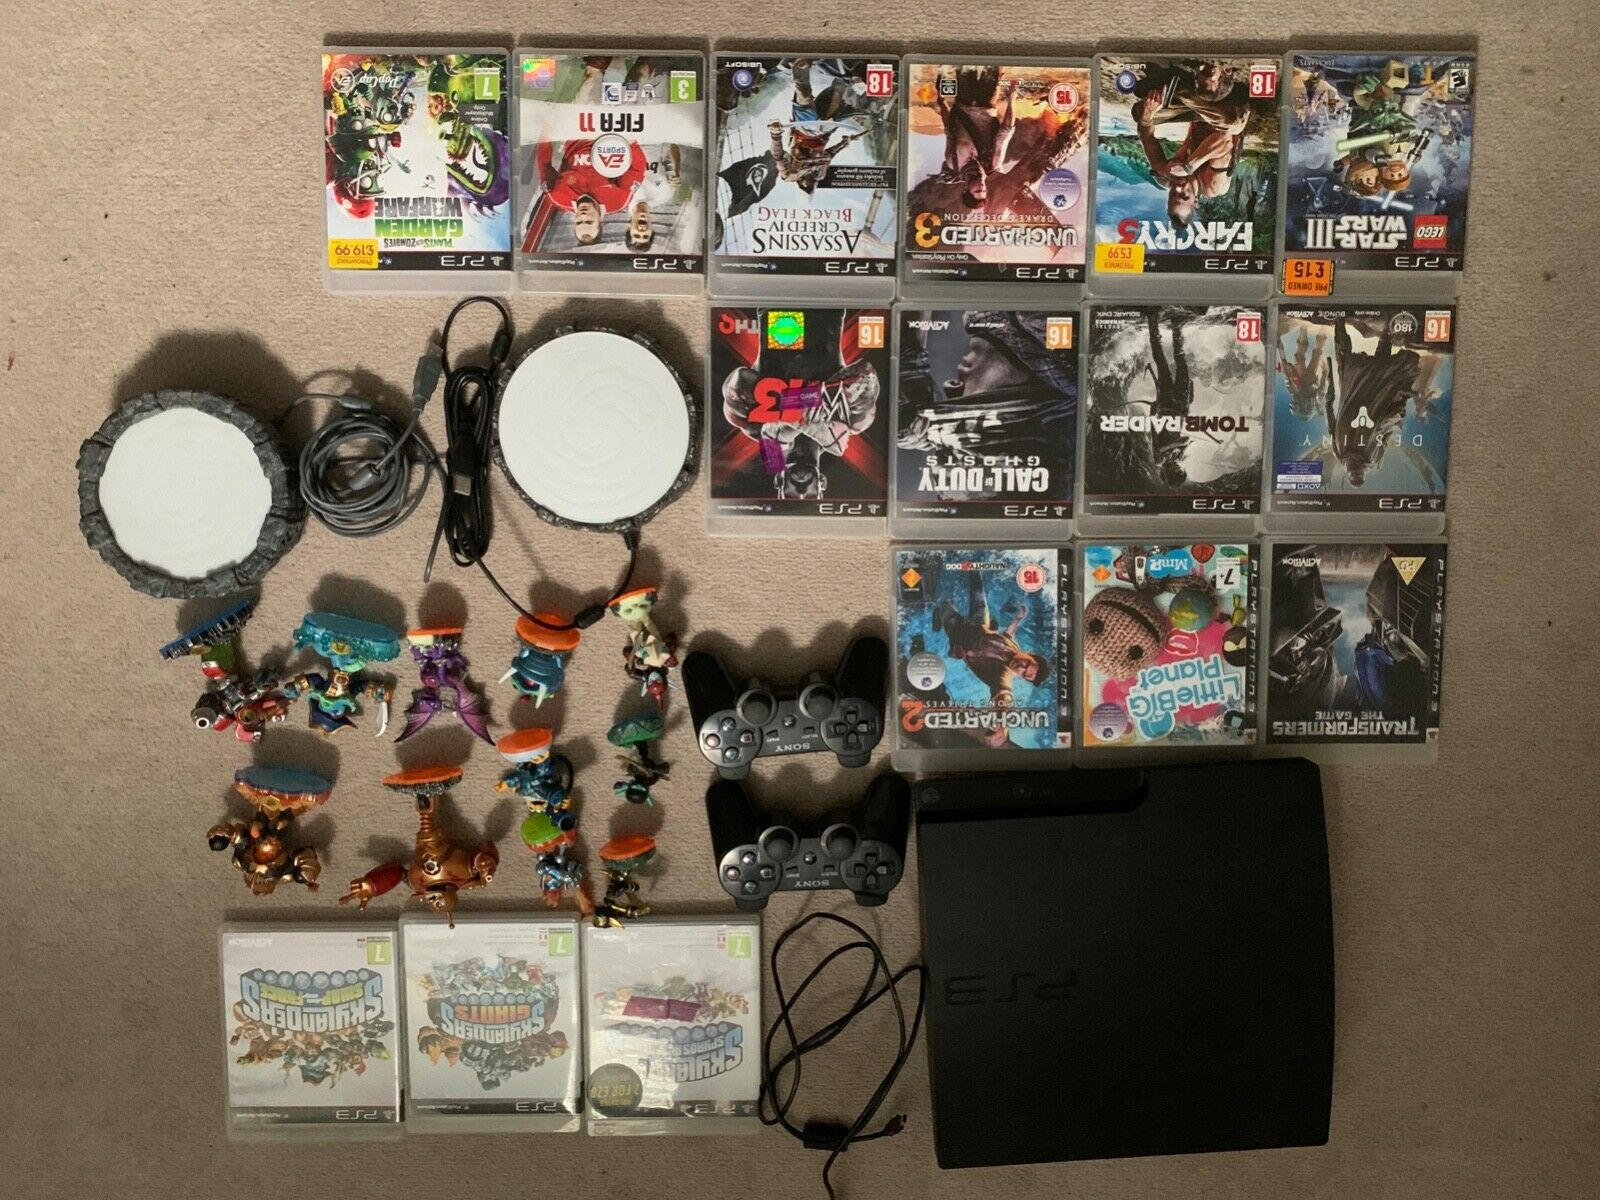 ps3 console in good working condition with 16 games and two remotes